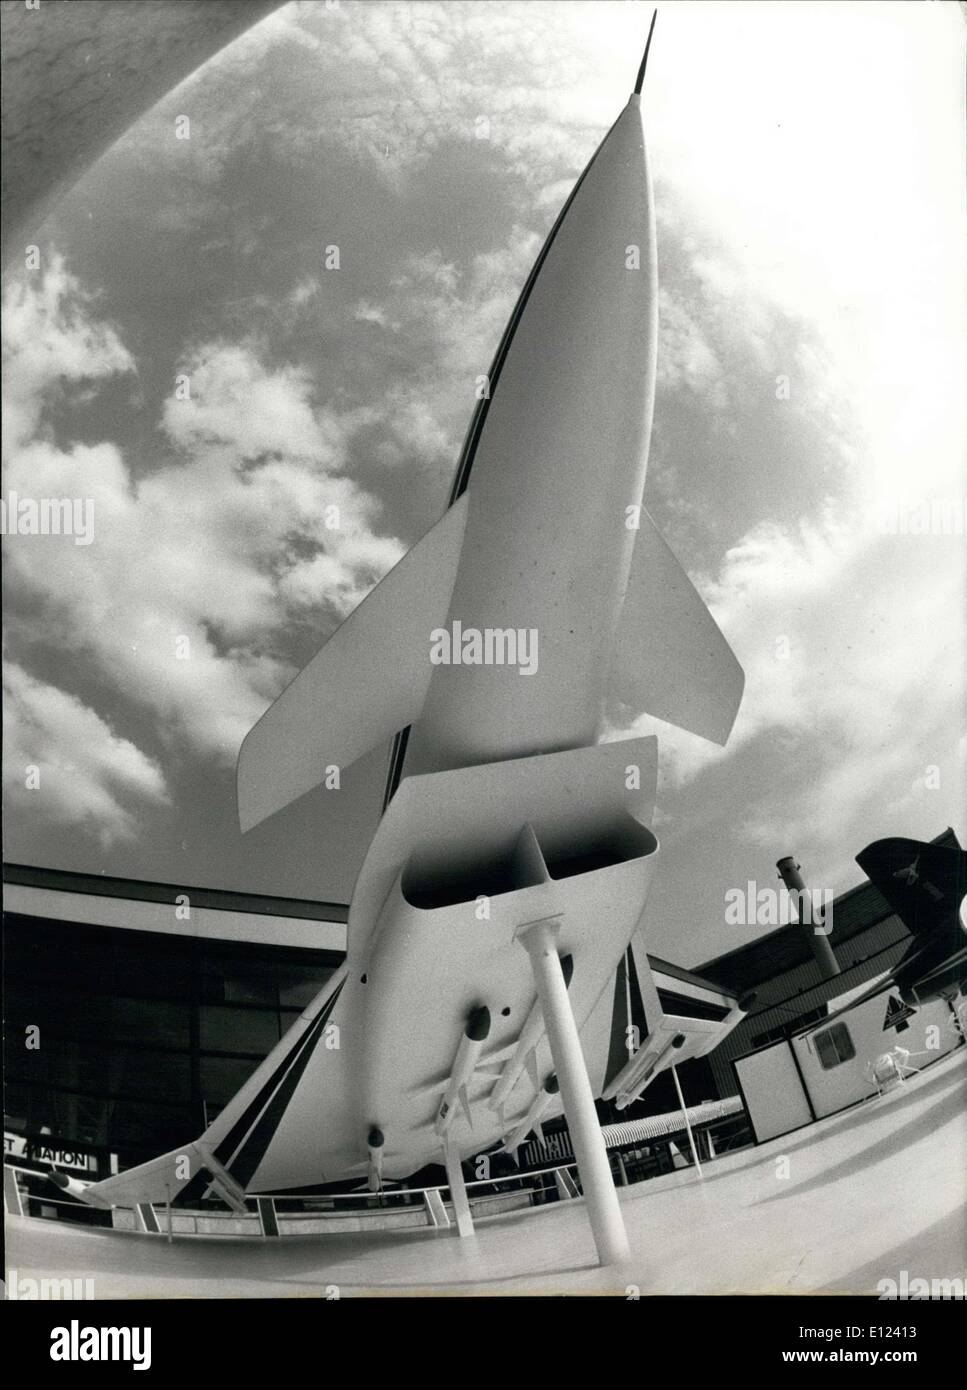 Jun. 04, 1985 - OPS/ 36TH AERONAUTICS ANS  SPACE INTERNATIONAL SHOW IN PARIS LE BOURGET: PROJECT OF A EUROPEAN FIGHTING PLANE BUILT BY GREAT BRITAIN. - Stock Image